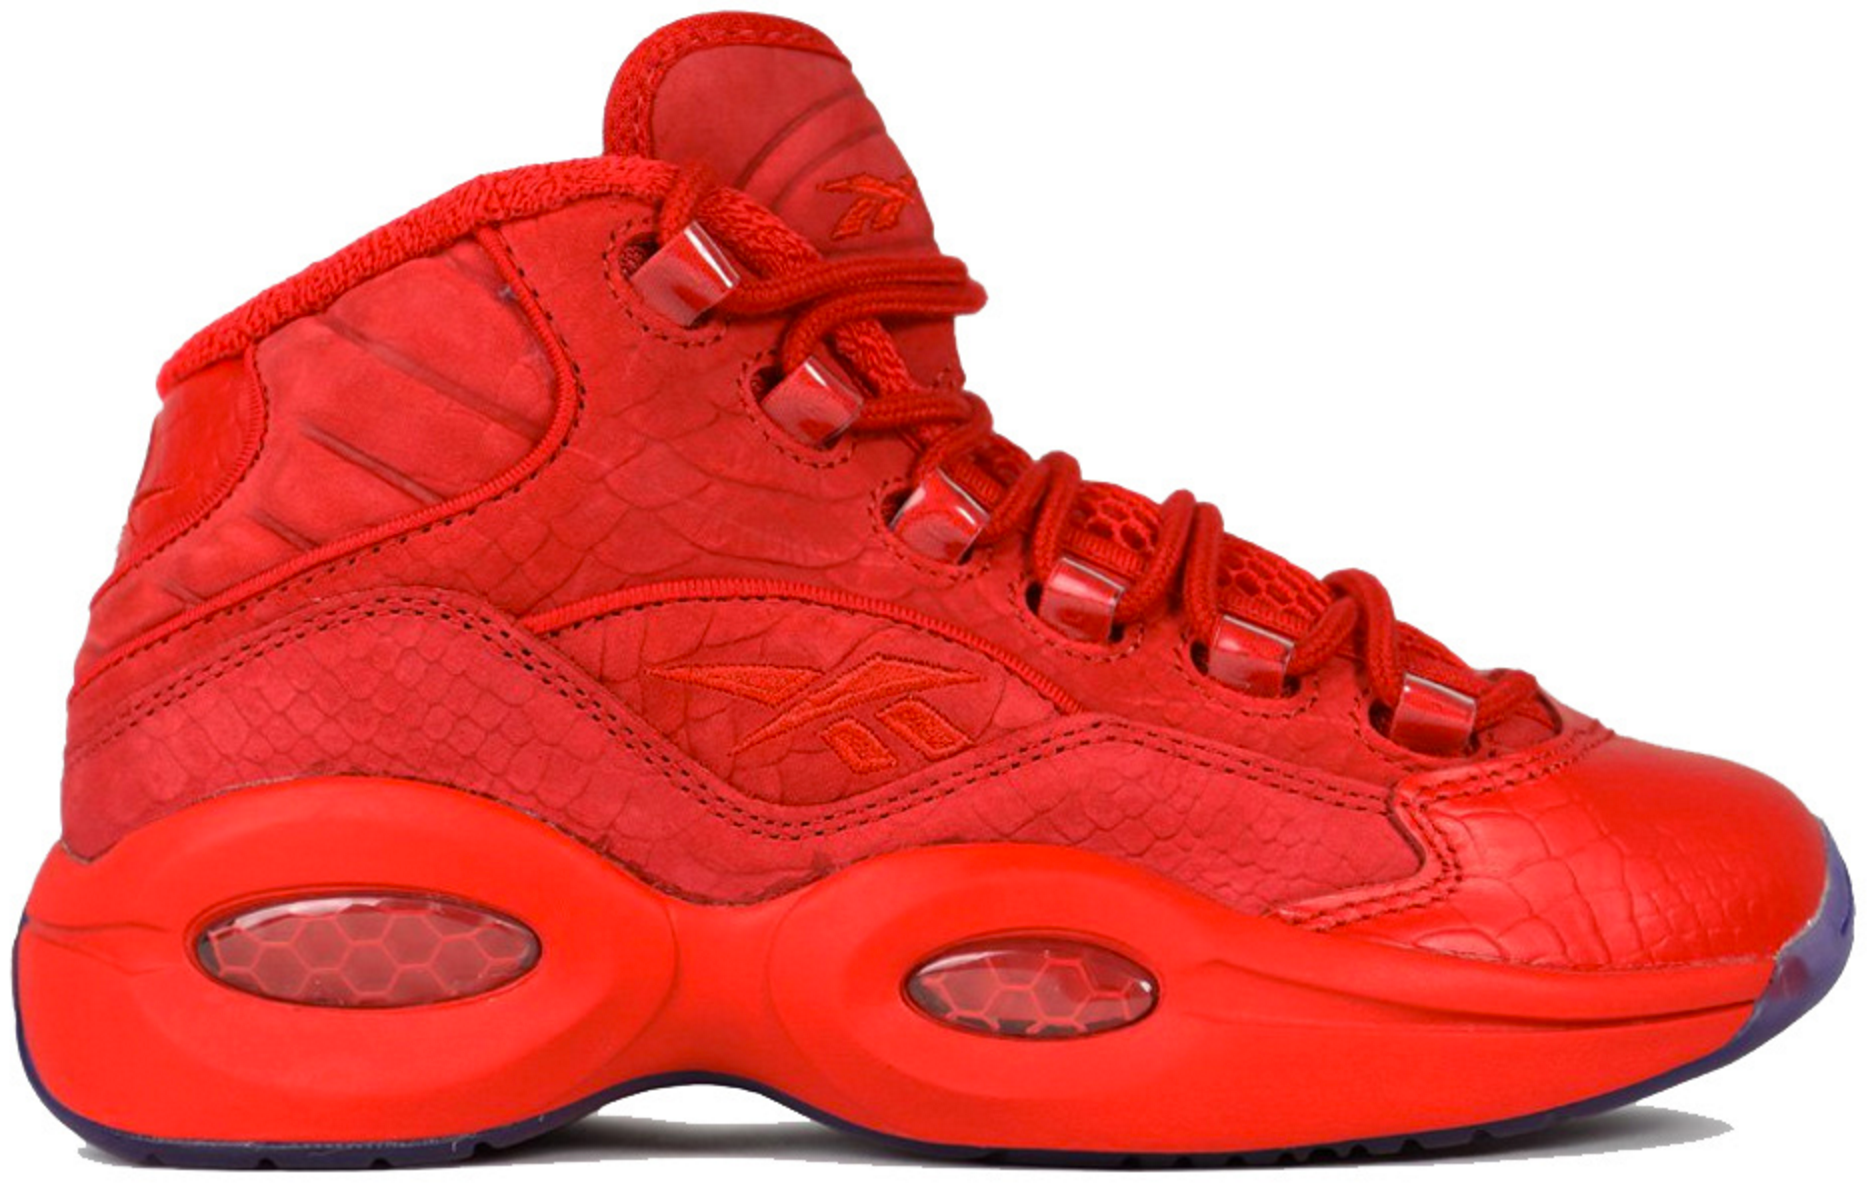 Reebok Question Mid Teyana Taylor Primal Red (W)